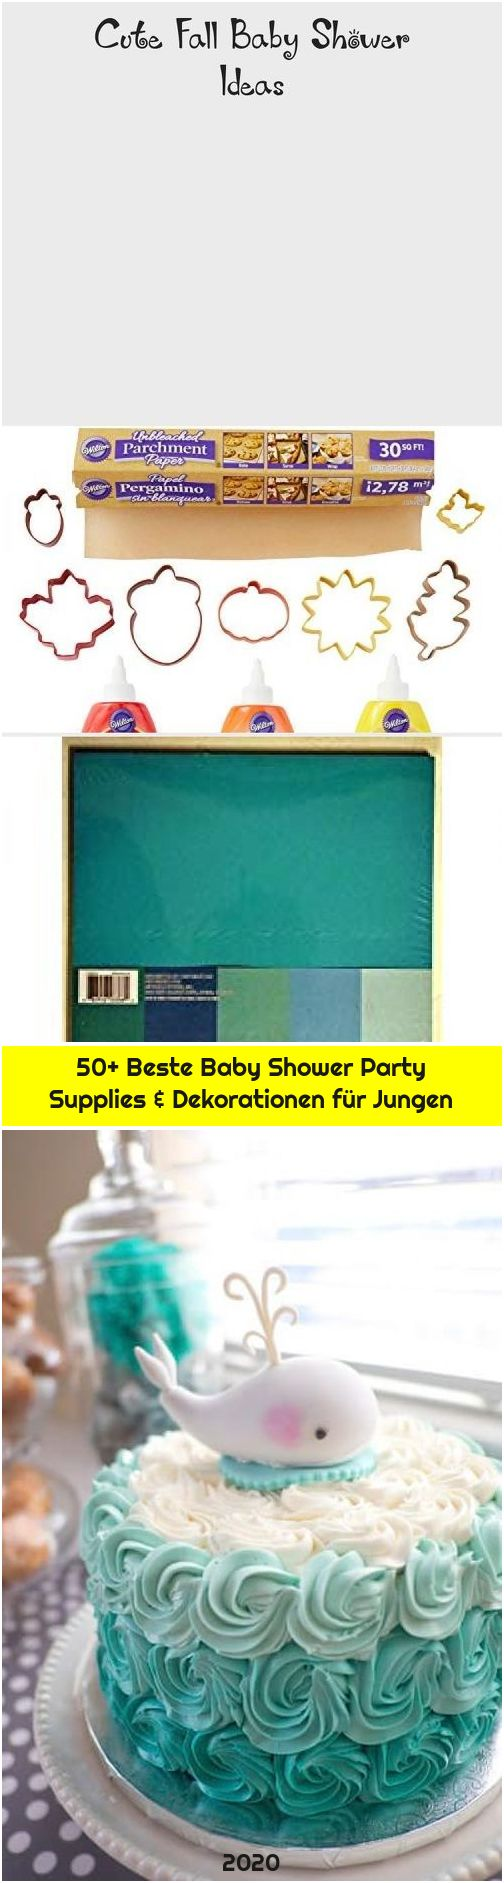 50+ Beste Baby Shower Party Supplies & Dekorationen für Jungen